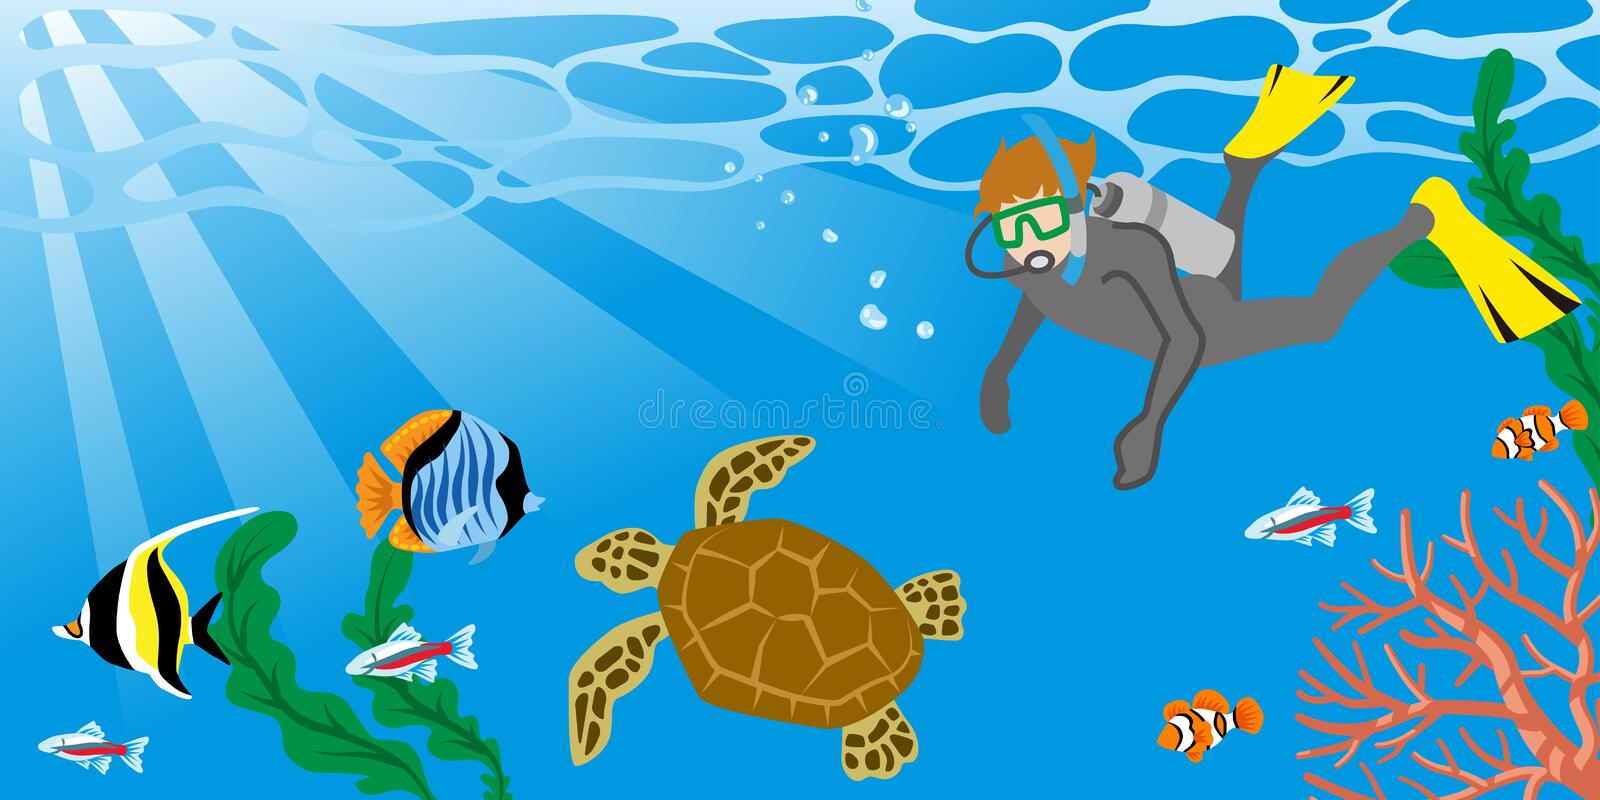 Man enjoying Scuba Diving with the Sea turtle royalty free illustration